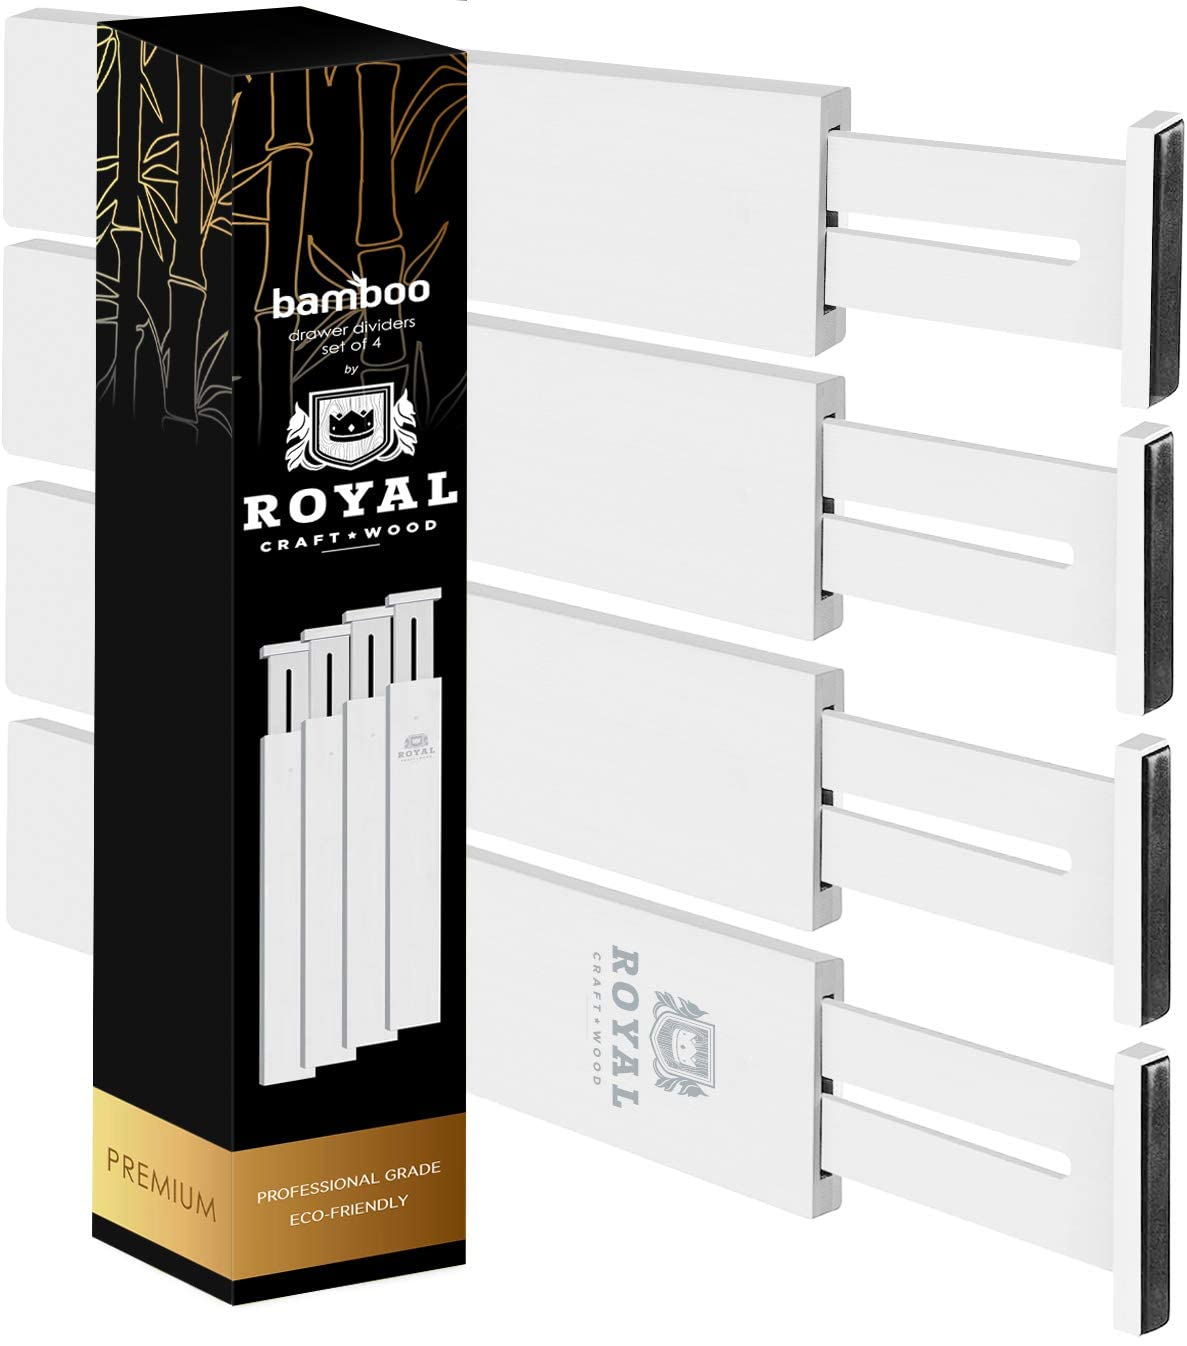 Adjustable Bamboo Drawer Dividers Organizers - Expandable Drawer Organization Separators For Kitchen, Dresser, Bedroom, Bathroom and Office, 4-Pack (13.5-16 IN, White)